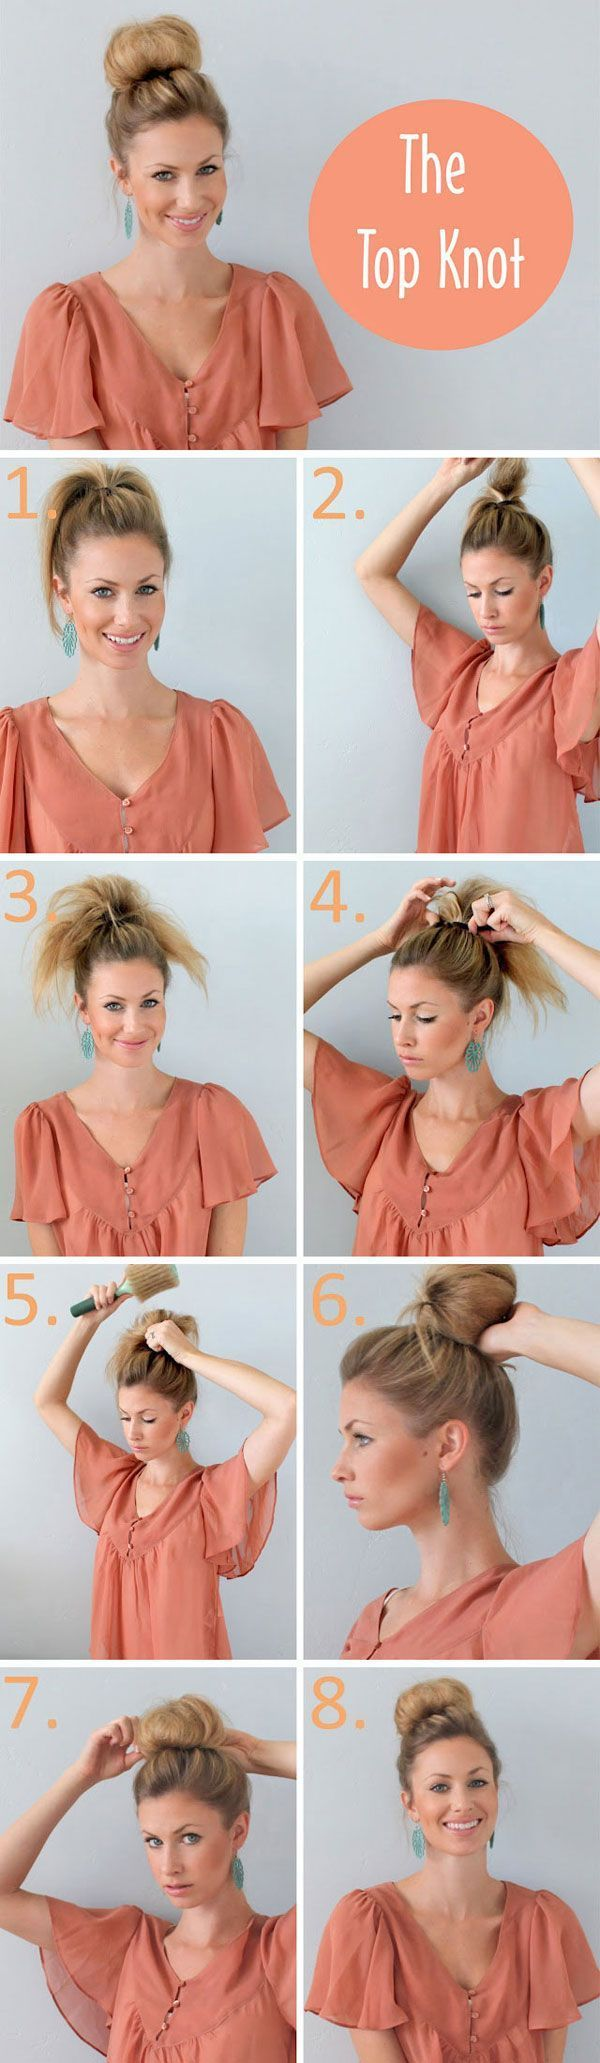 Great tutorial the top knot ium growing my hair and bangs out